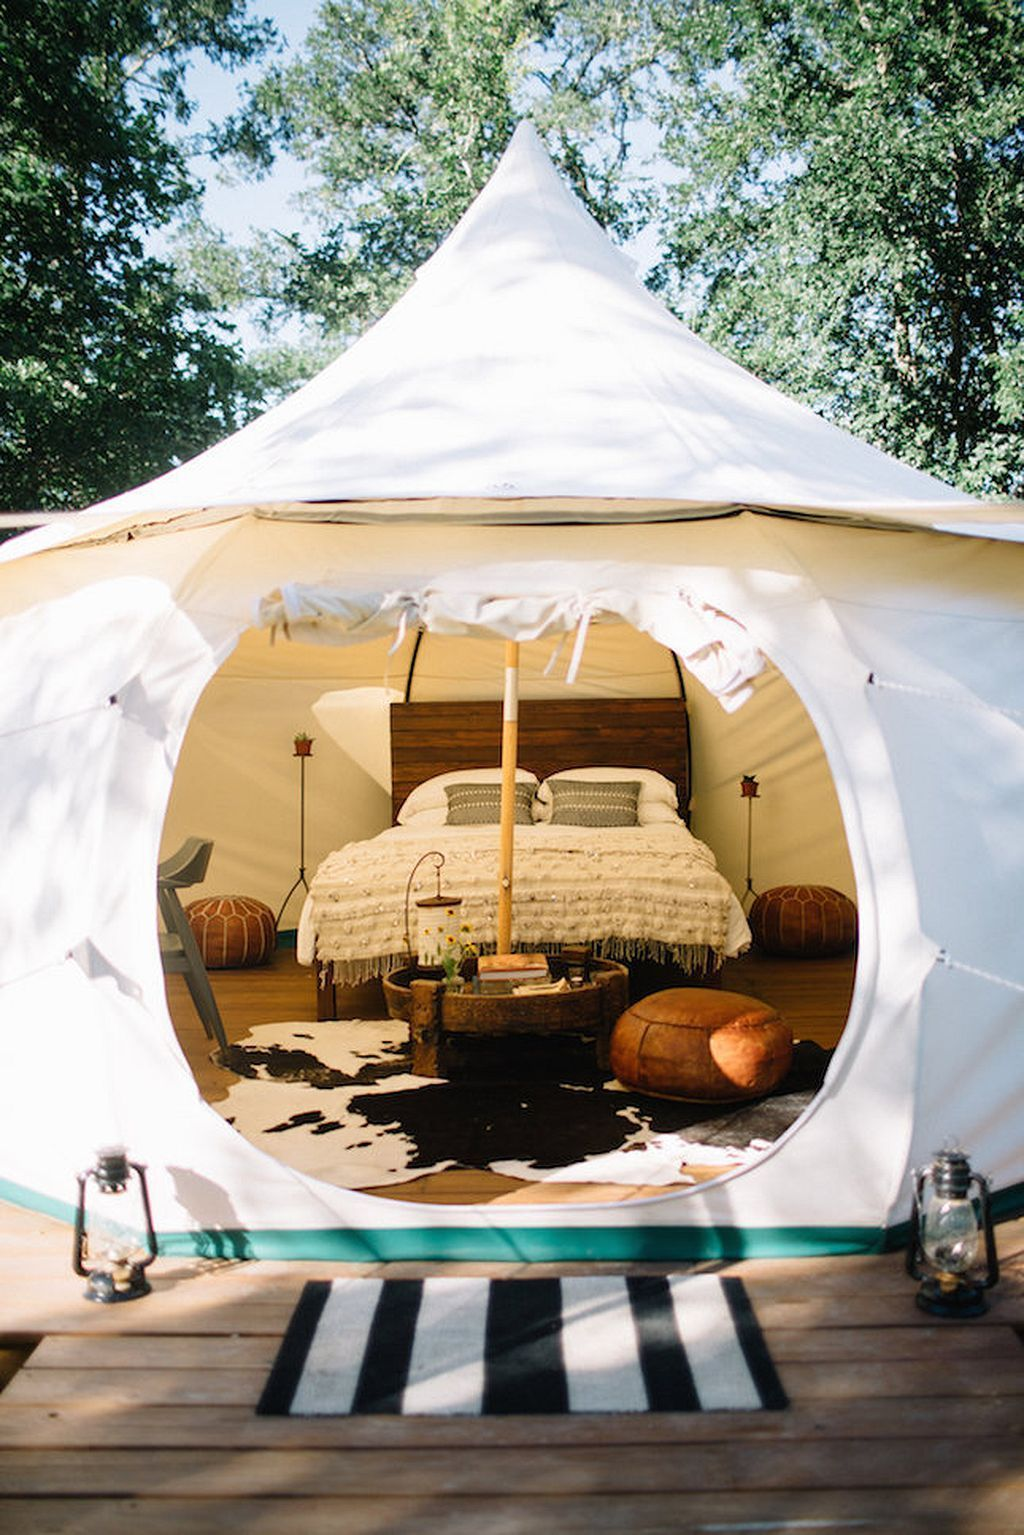 13 Clever Ways How to Makeover Backyard Tent Ideas